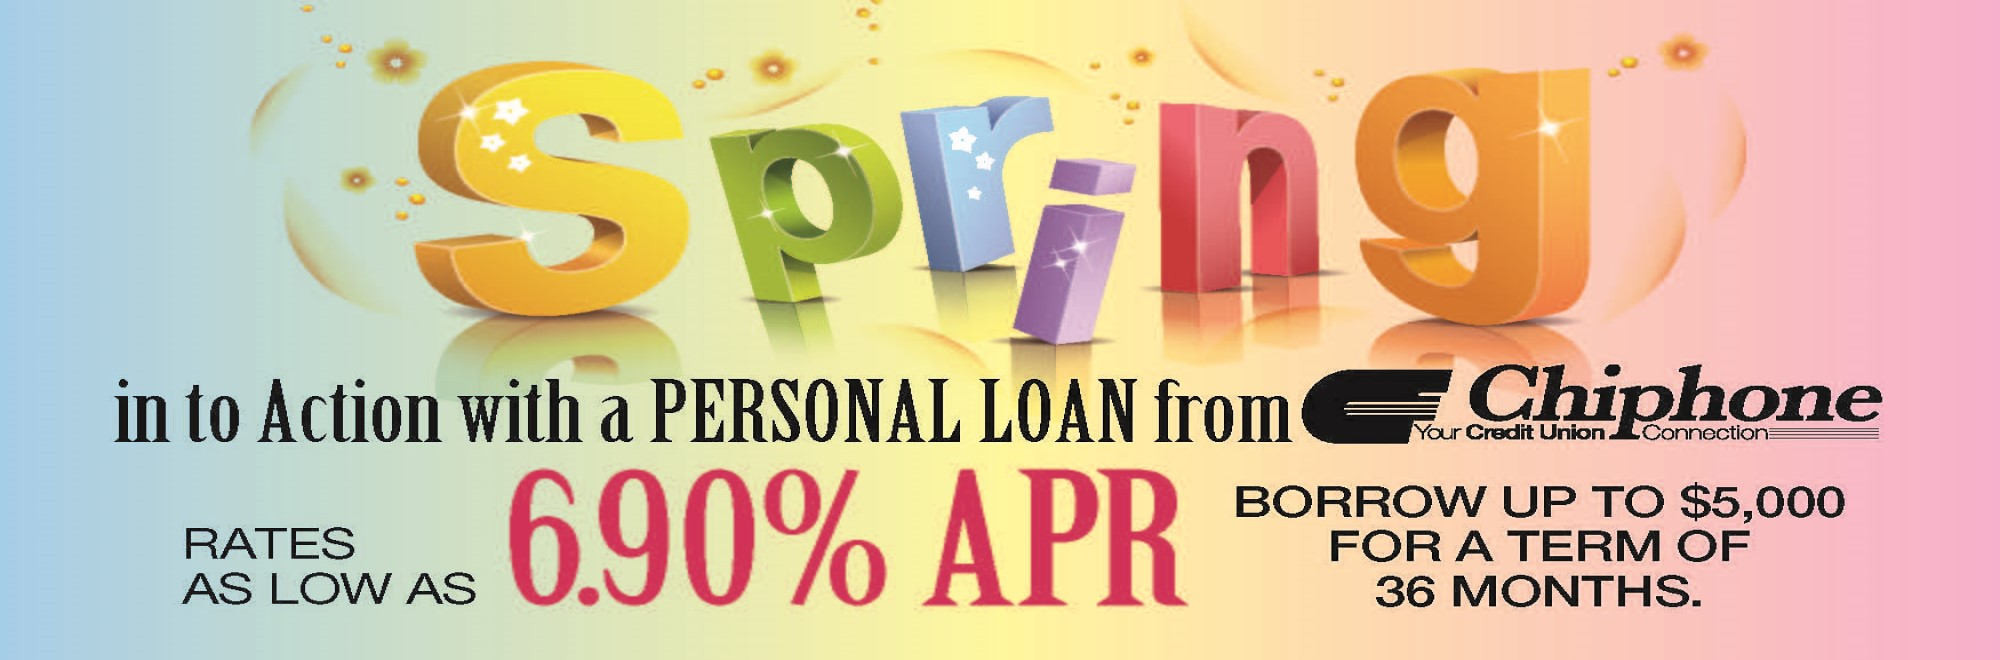 Spring in to action with a personal loan from Chiphone!